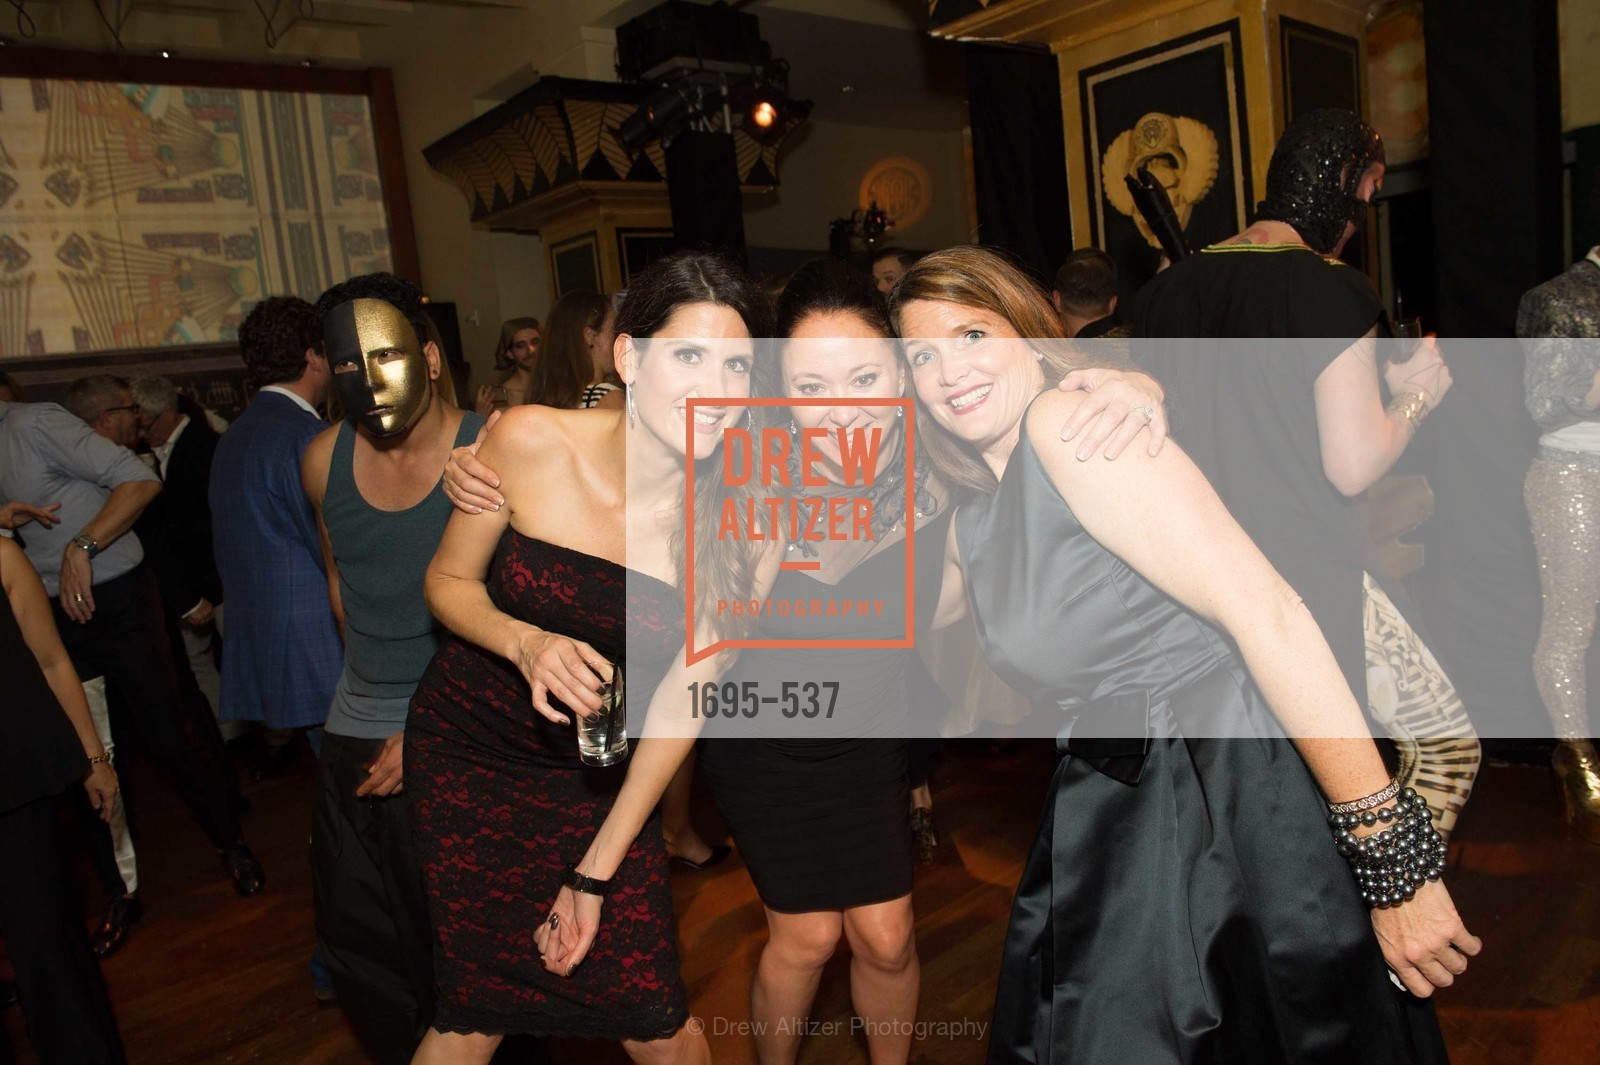 Monica Gookins, Lisa Brady, Meg Conrad, TOP OF THE MARK'S 75TH Anniversary Party, US, November 6th, 2014,Drew Altizer, Drew Altizer Photography, full-service agency, private events, San Francisco photographer, photographer california